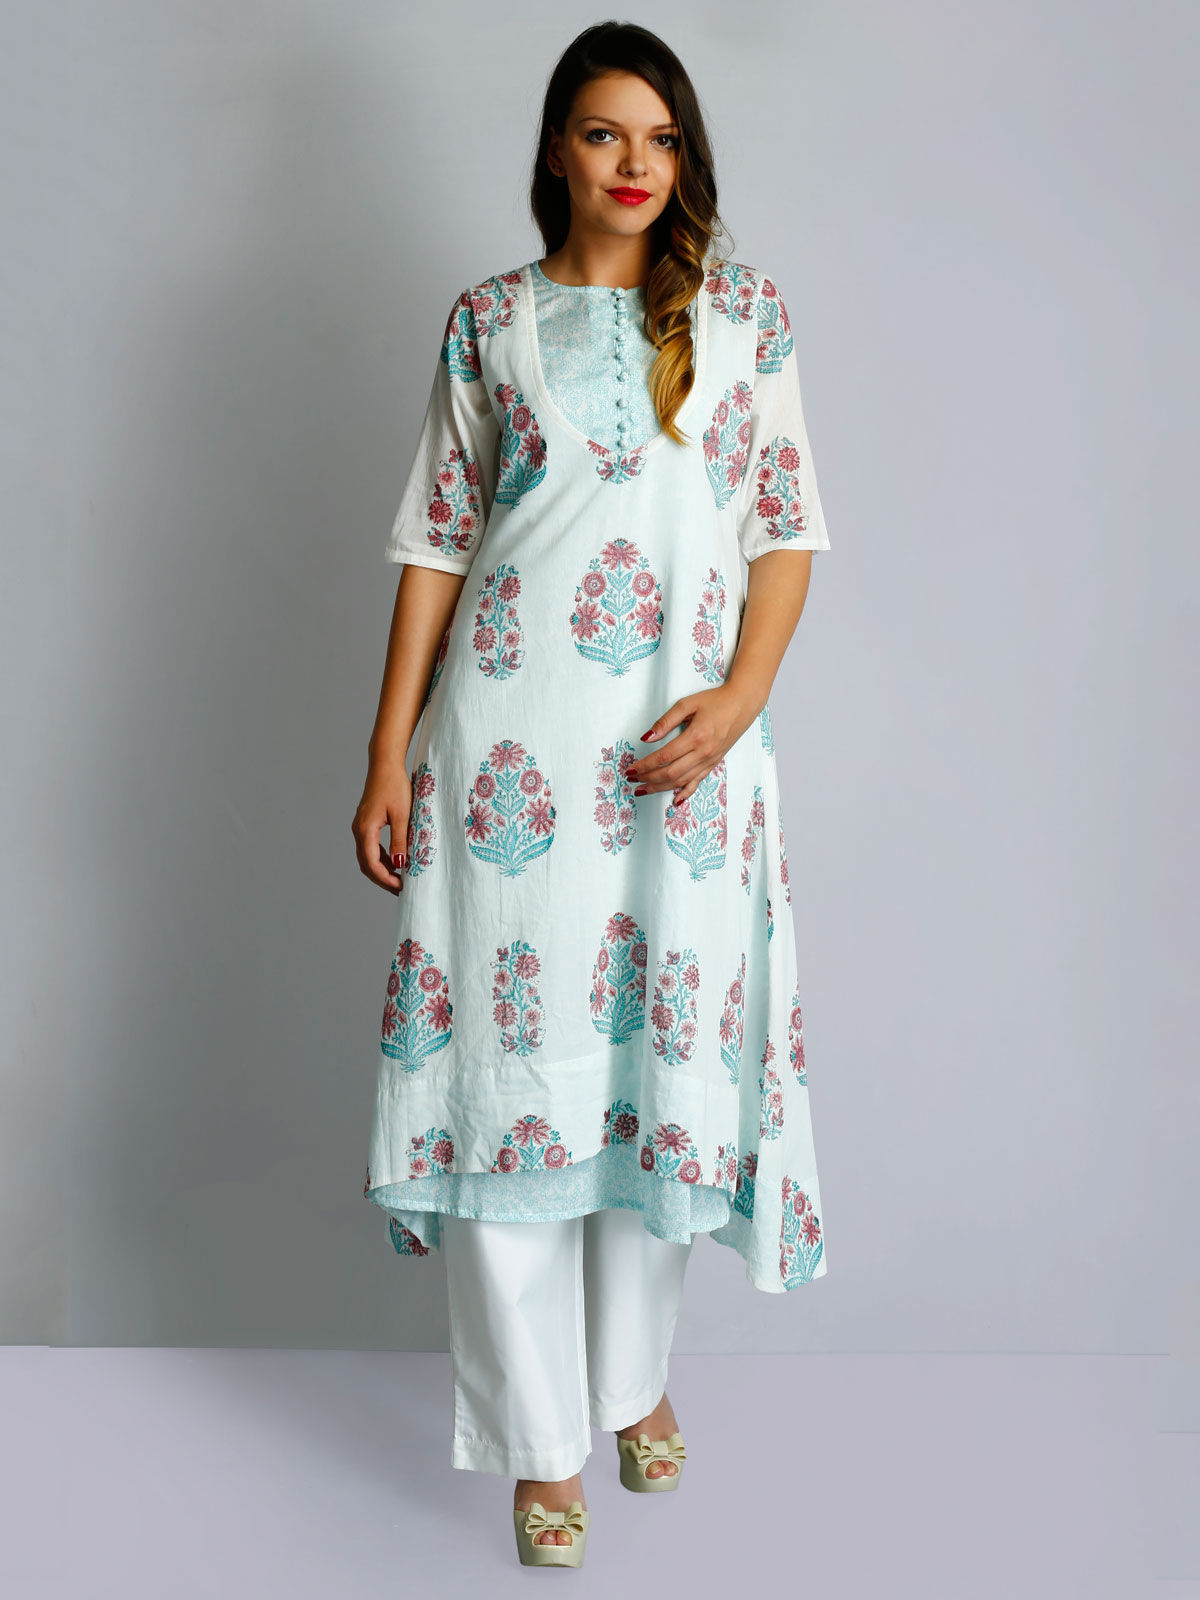 White cotton voile blue hand block prints layered tunic